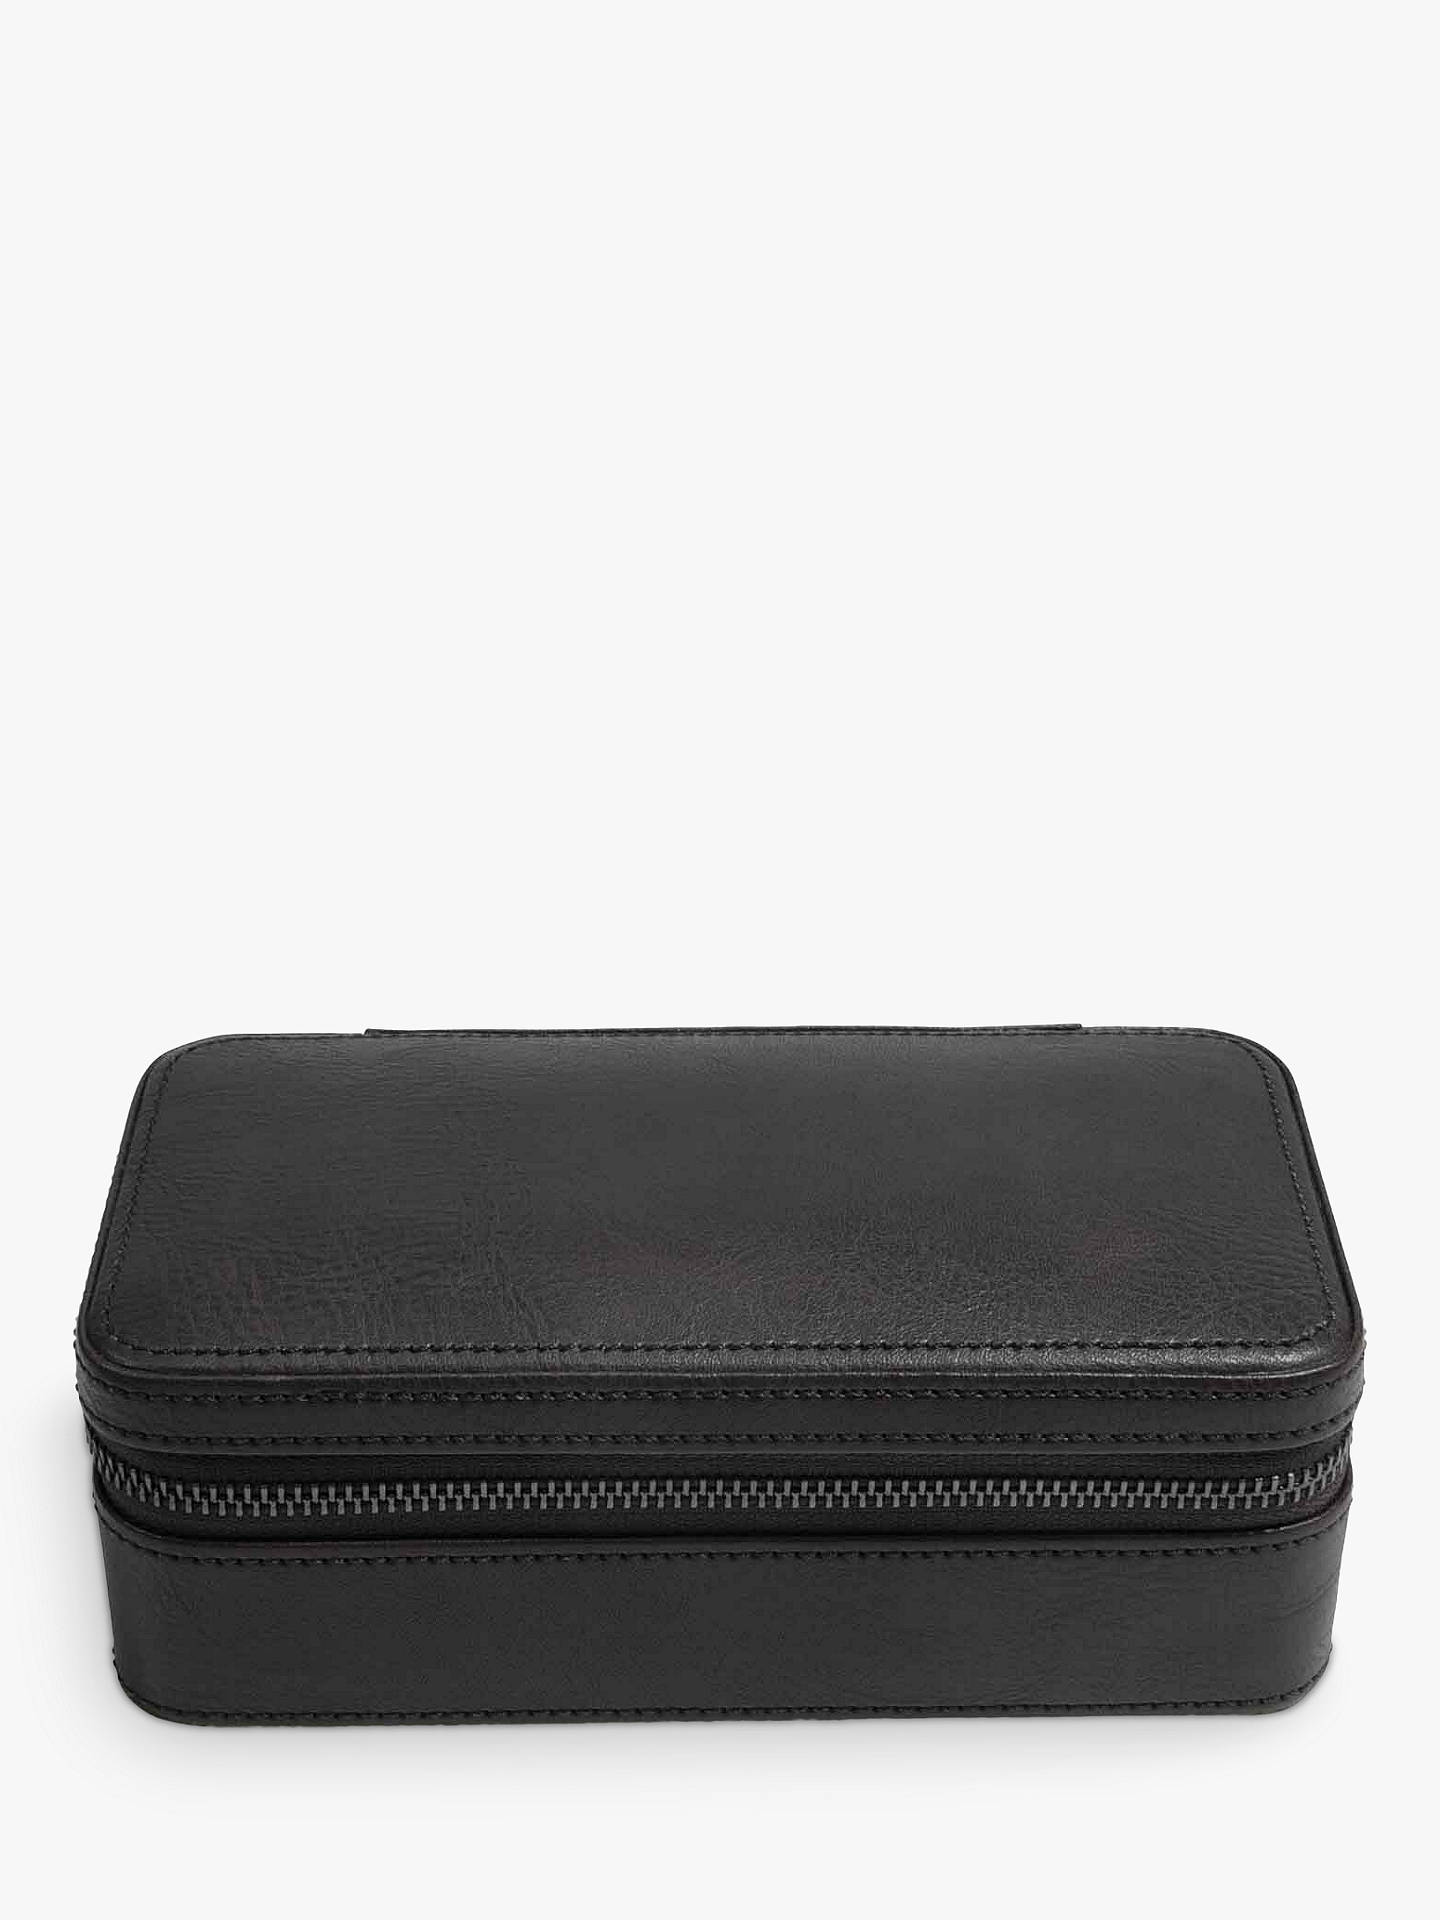 Buy Stackers Double Watch Box, Black Online at johnlewis.com